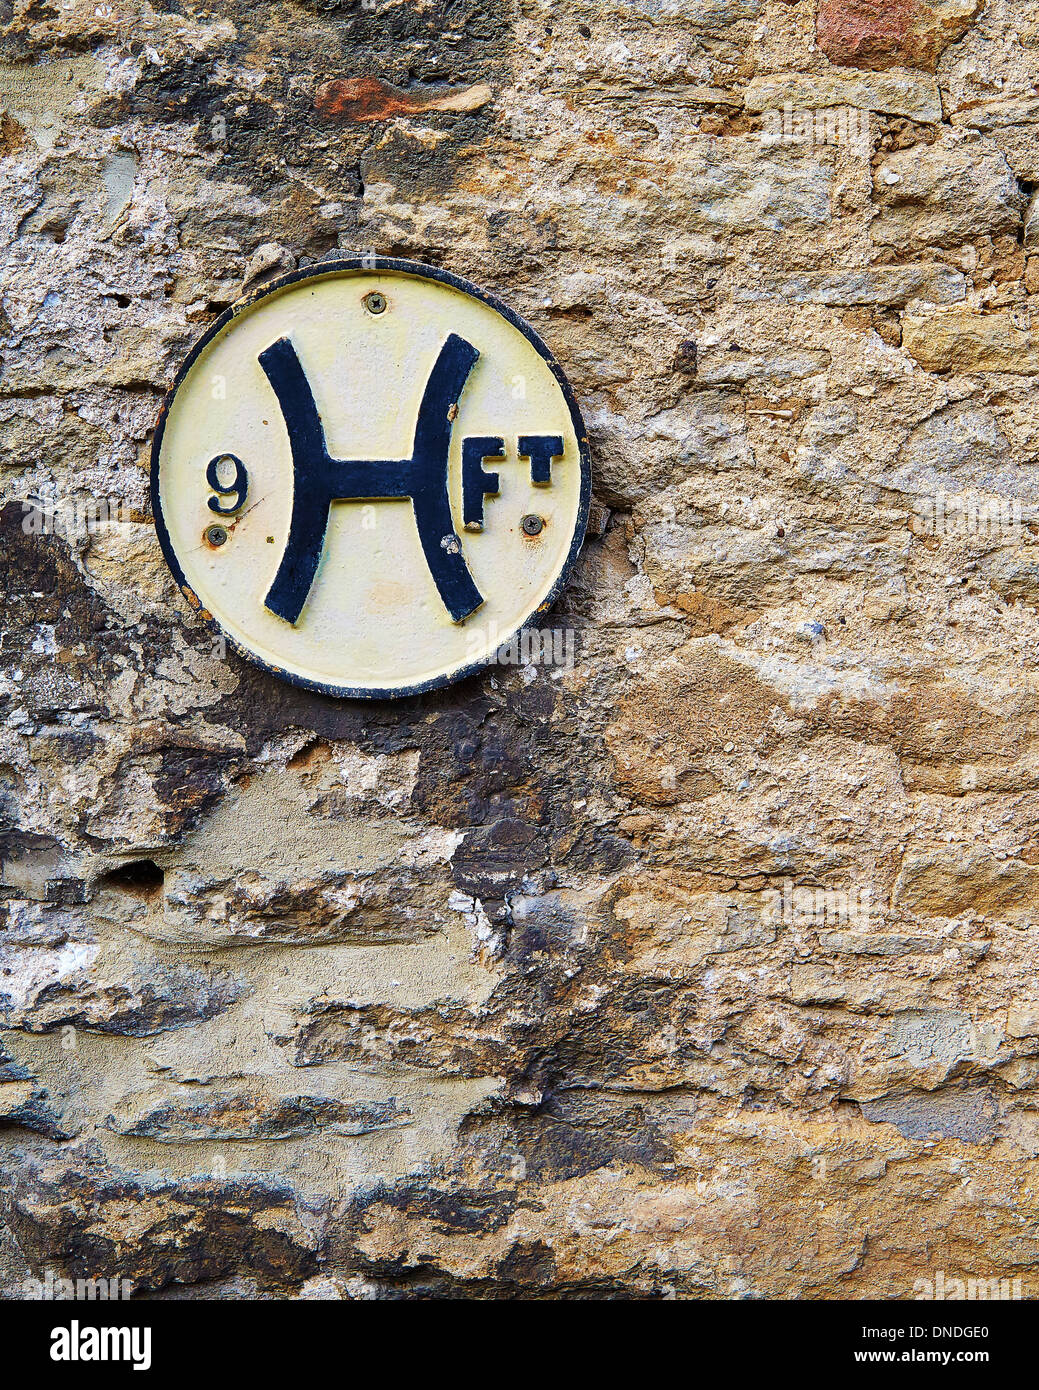 Antique fire hydrant sign on a stone wall in the Wiltshire Cotswolds UK - Stock Image